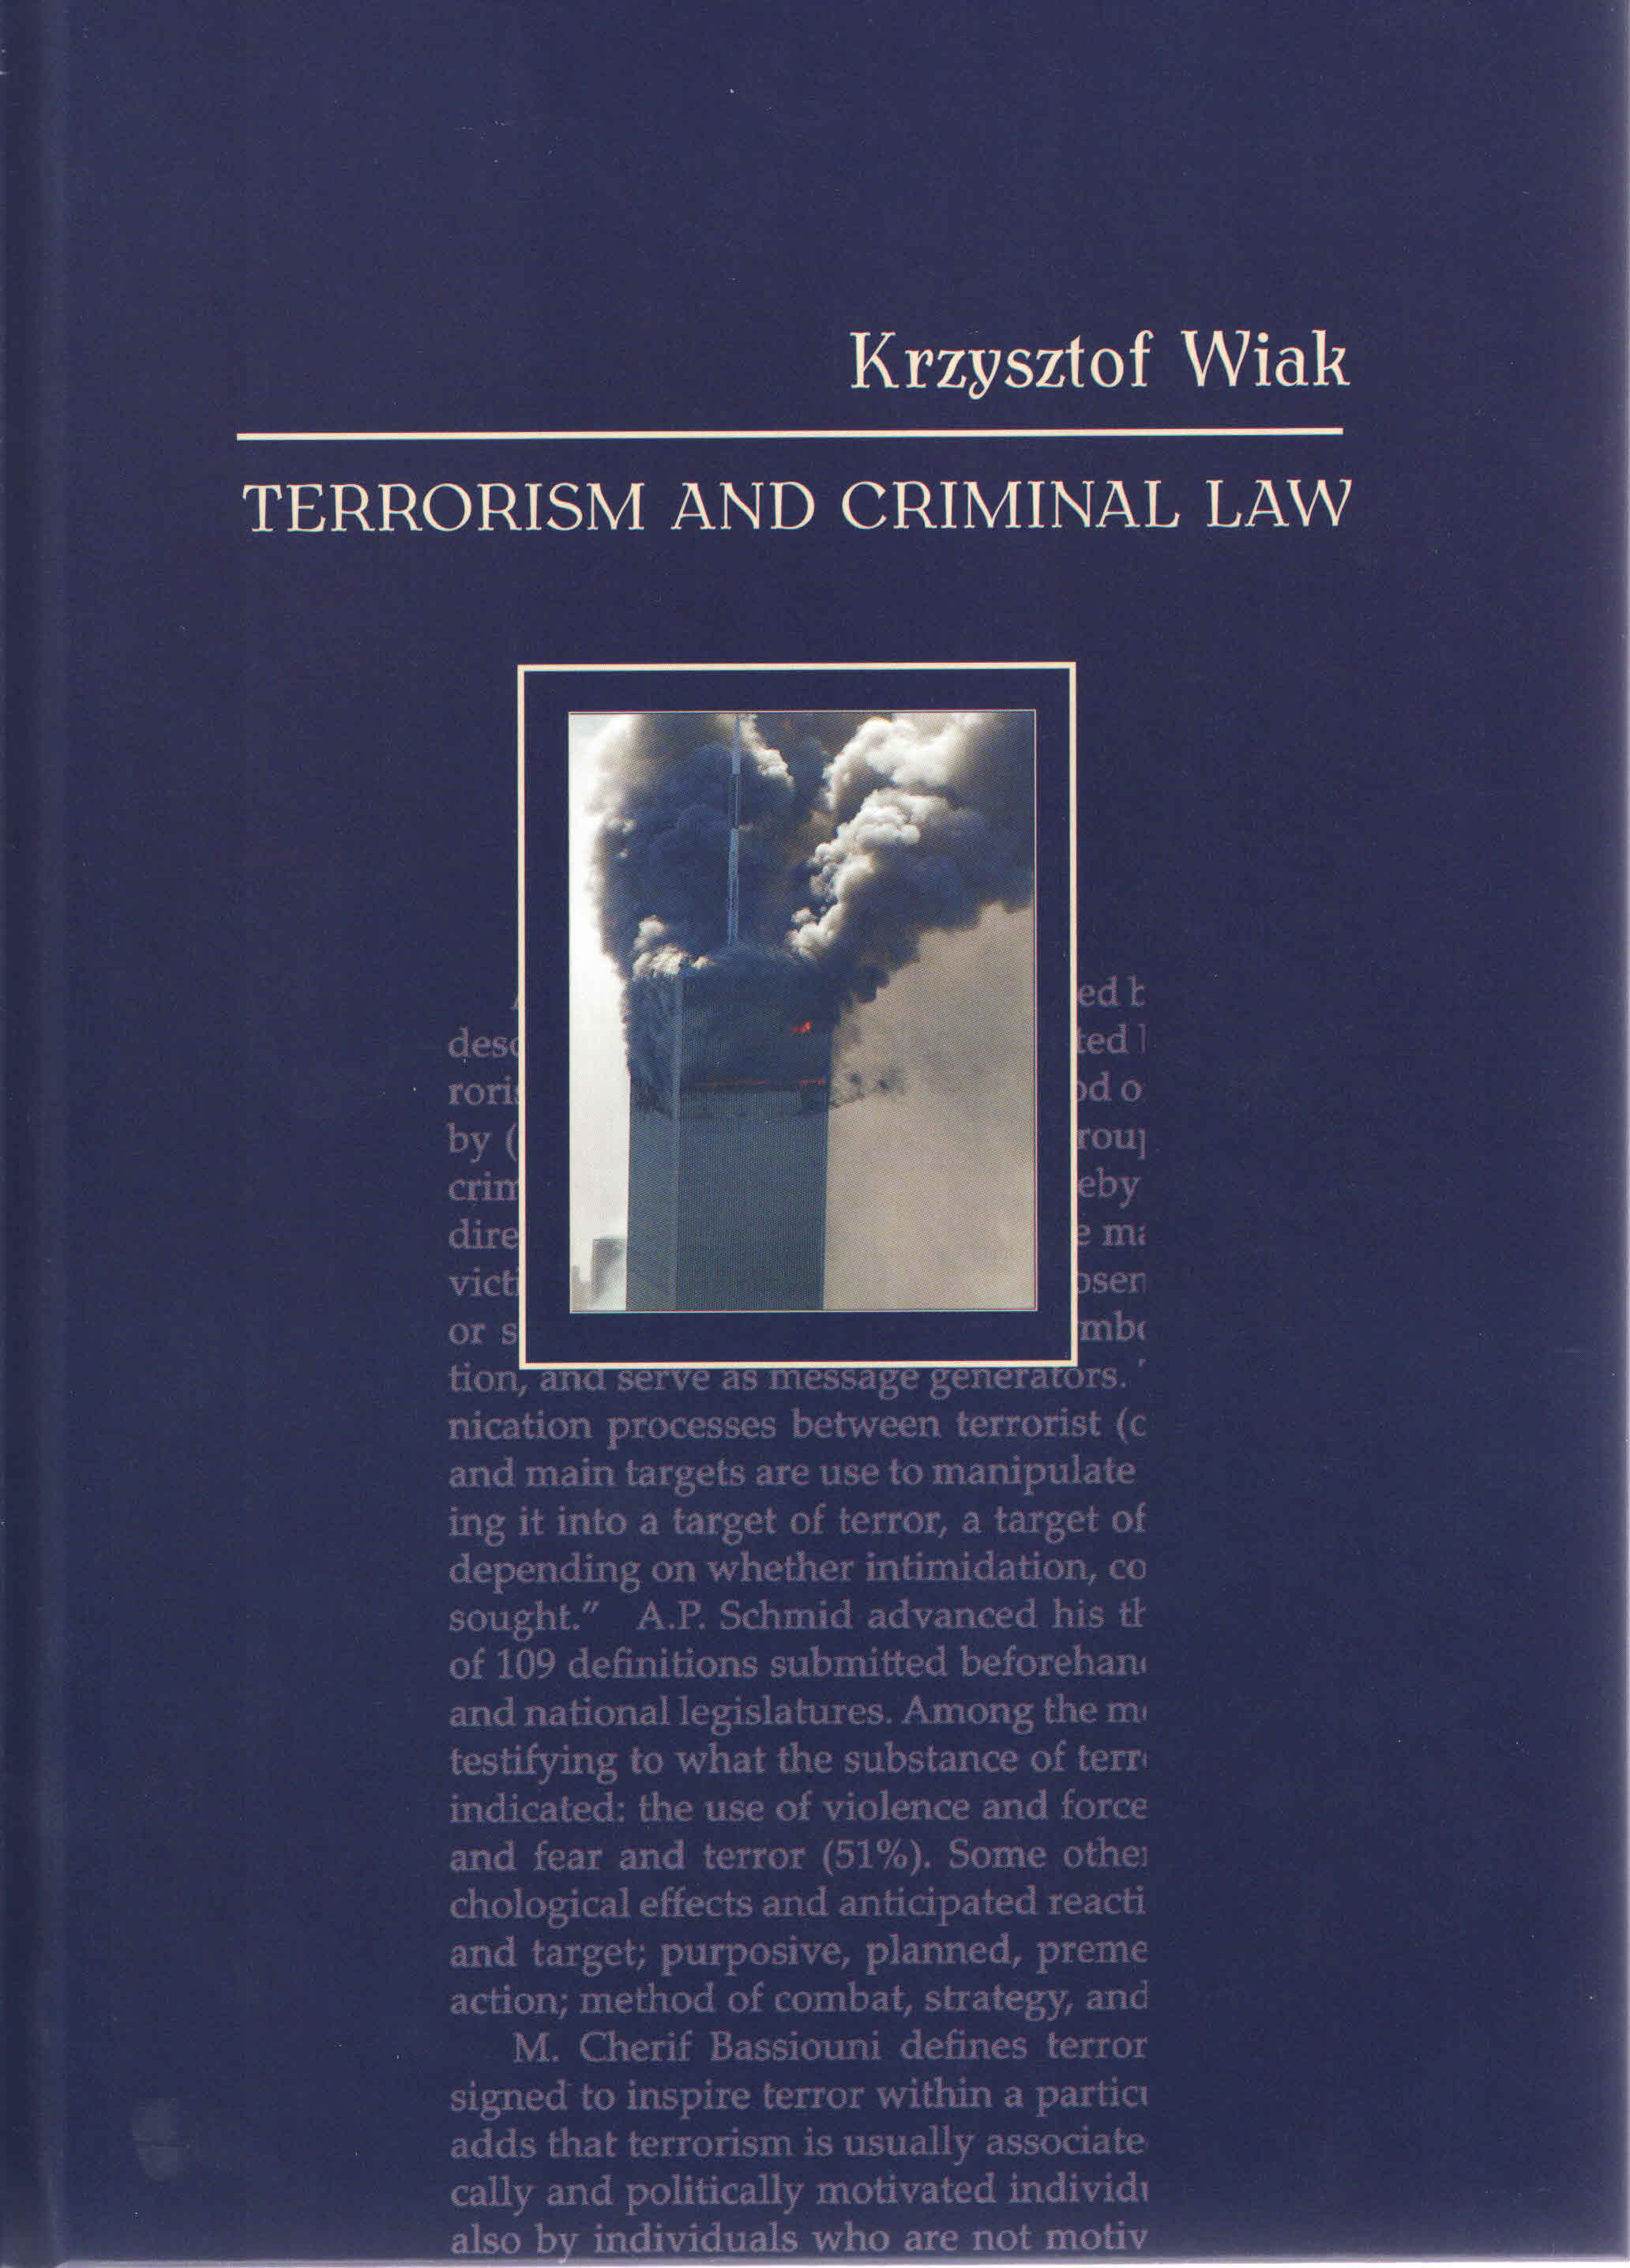 TERRORISM AND CRIMINAL LAW